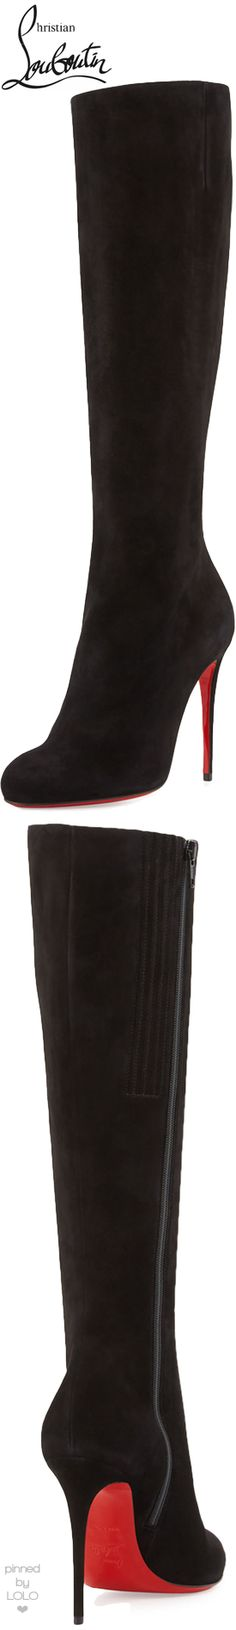 Christian Louboutin Fifi Botta Suede Red Sole Knee Boot, Black